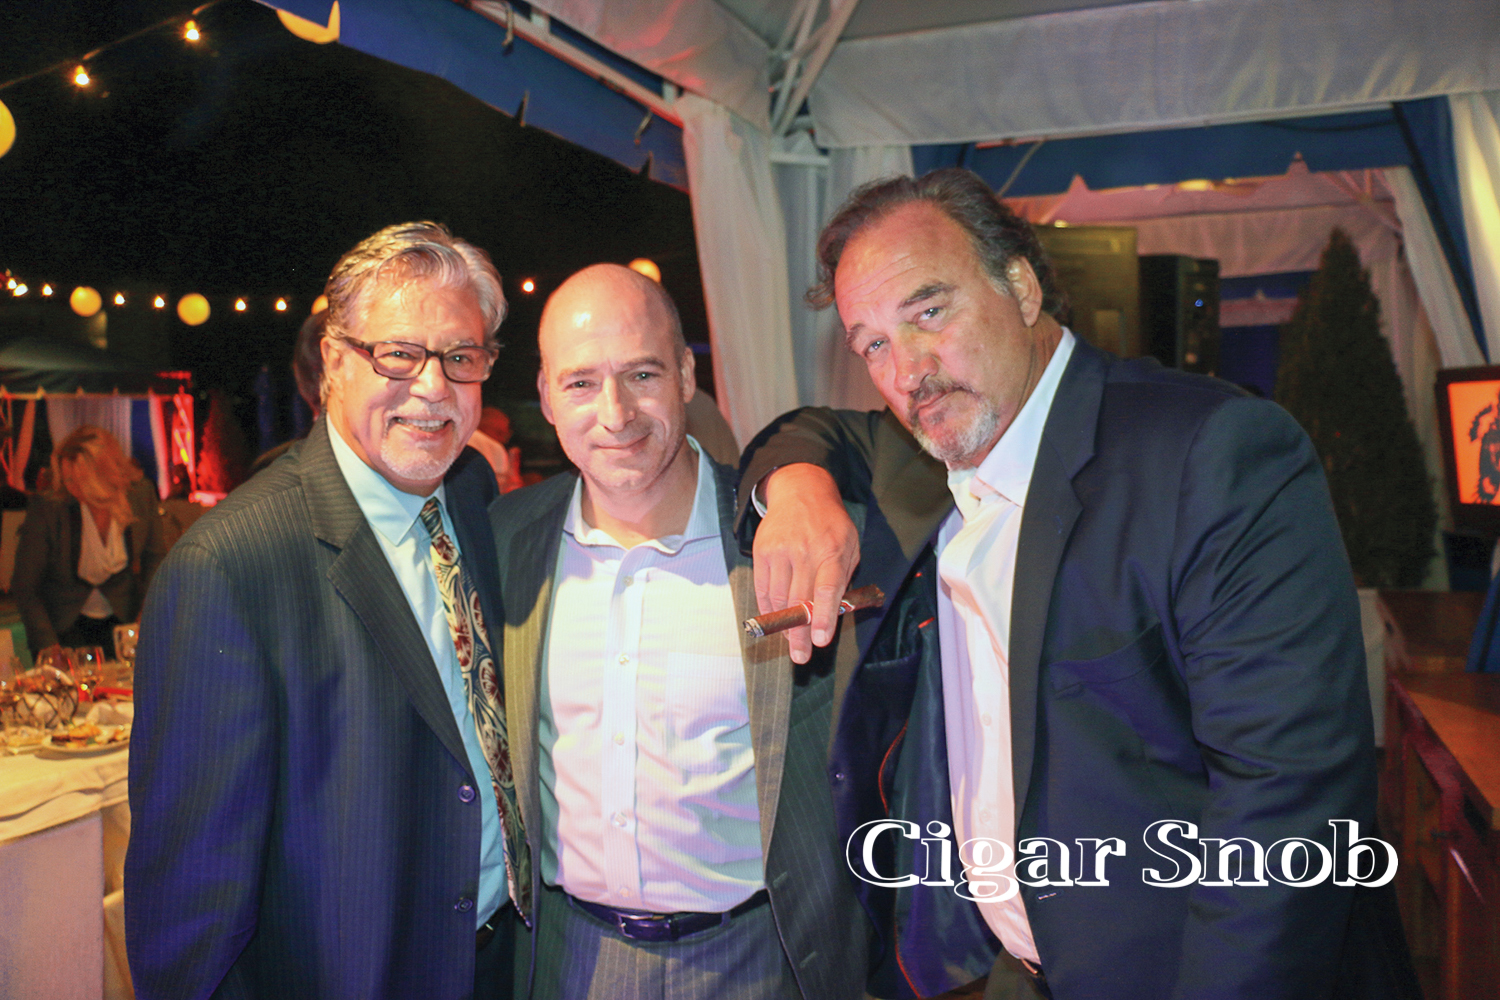 Vincent Guastaferro, Craig Weiss and Jim Belushi